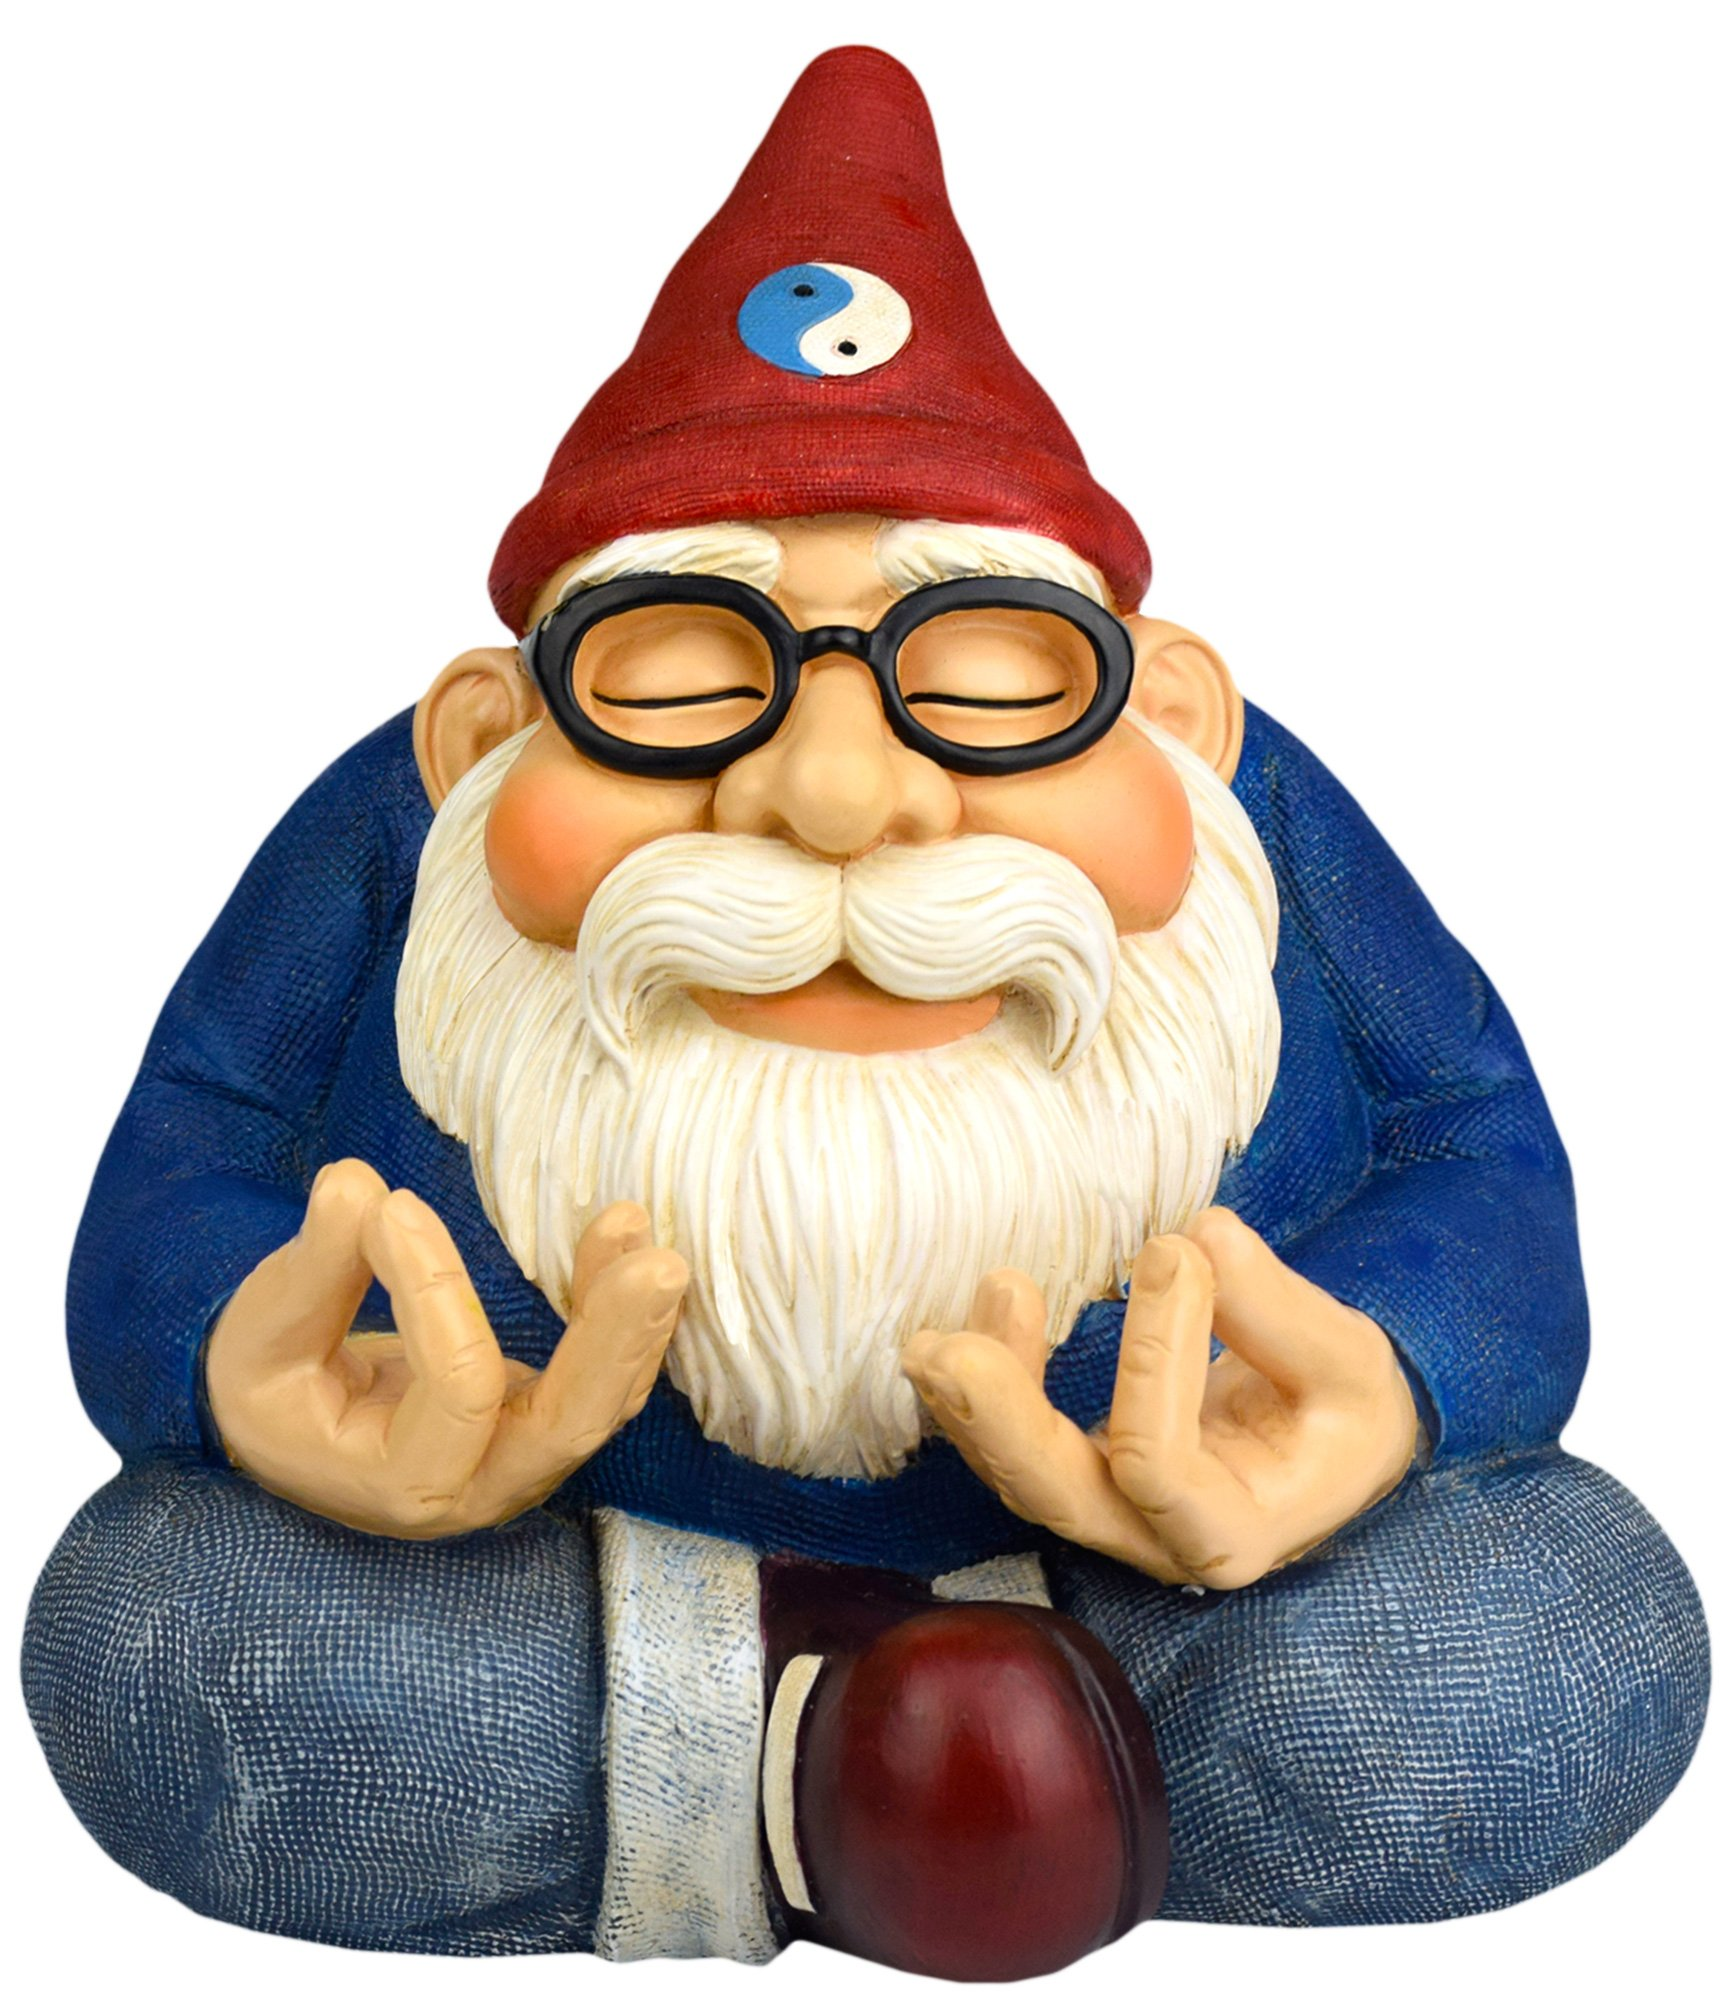 Twig & Flower The Ohm Gnome (Smiles and Serenity for Your Home Or Fairy Garden) by